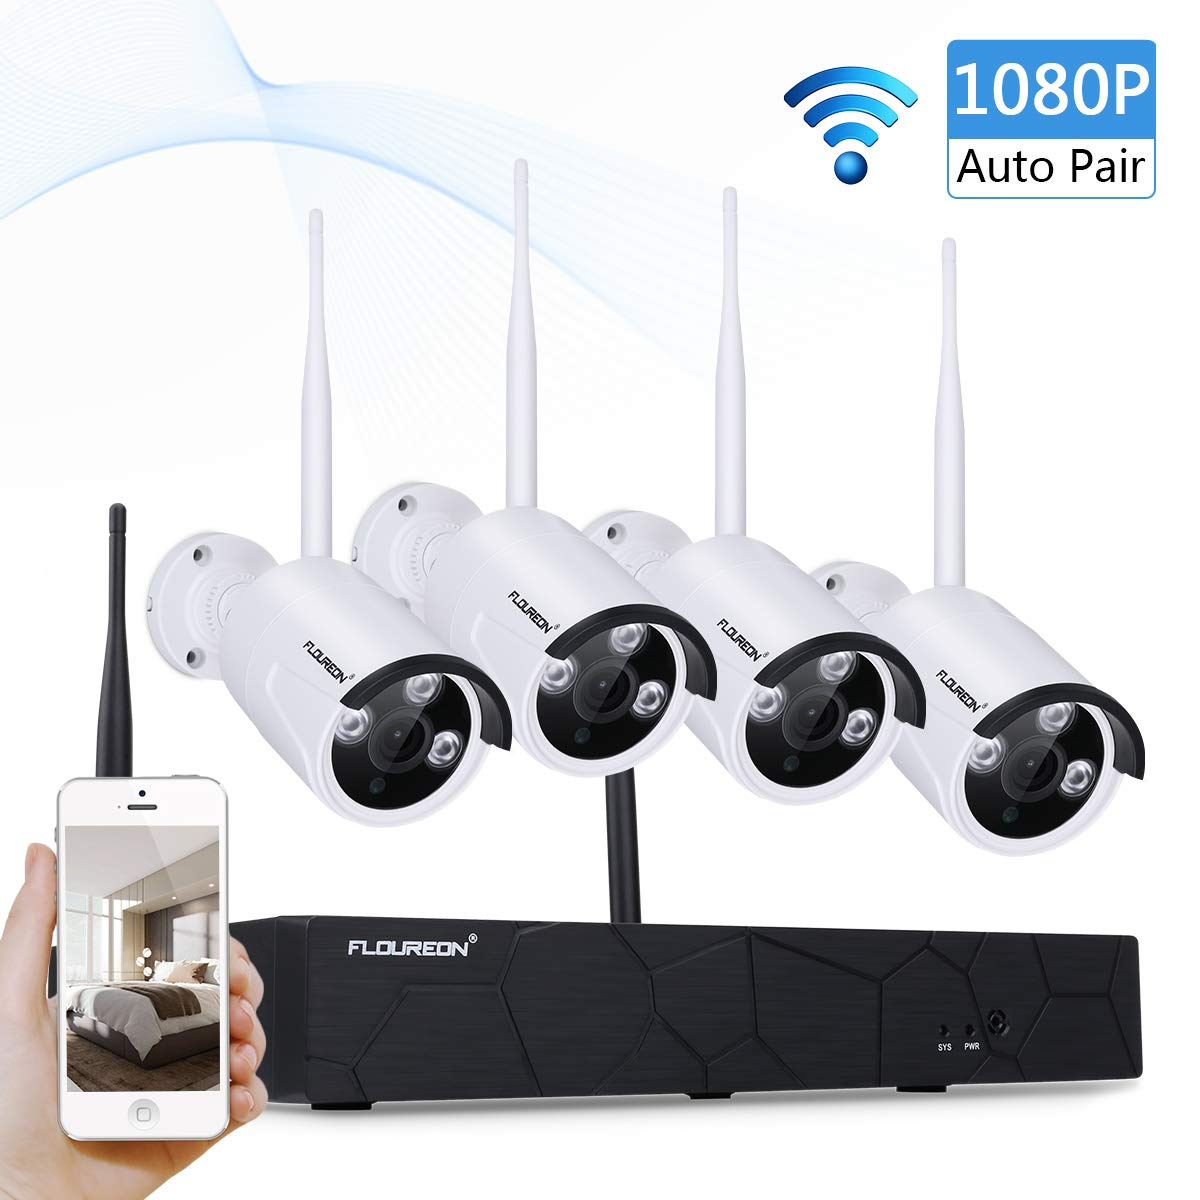 FLOUREON CCTV Wireless Security Cameras System, 4CH 1080P NVR 4Pcs 1080P IP  Security Cameras, P2P CCTV Camera System NO HDD